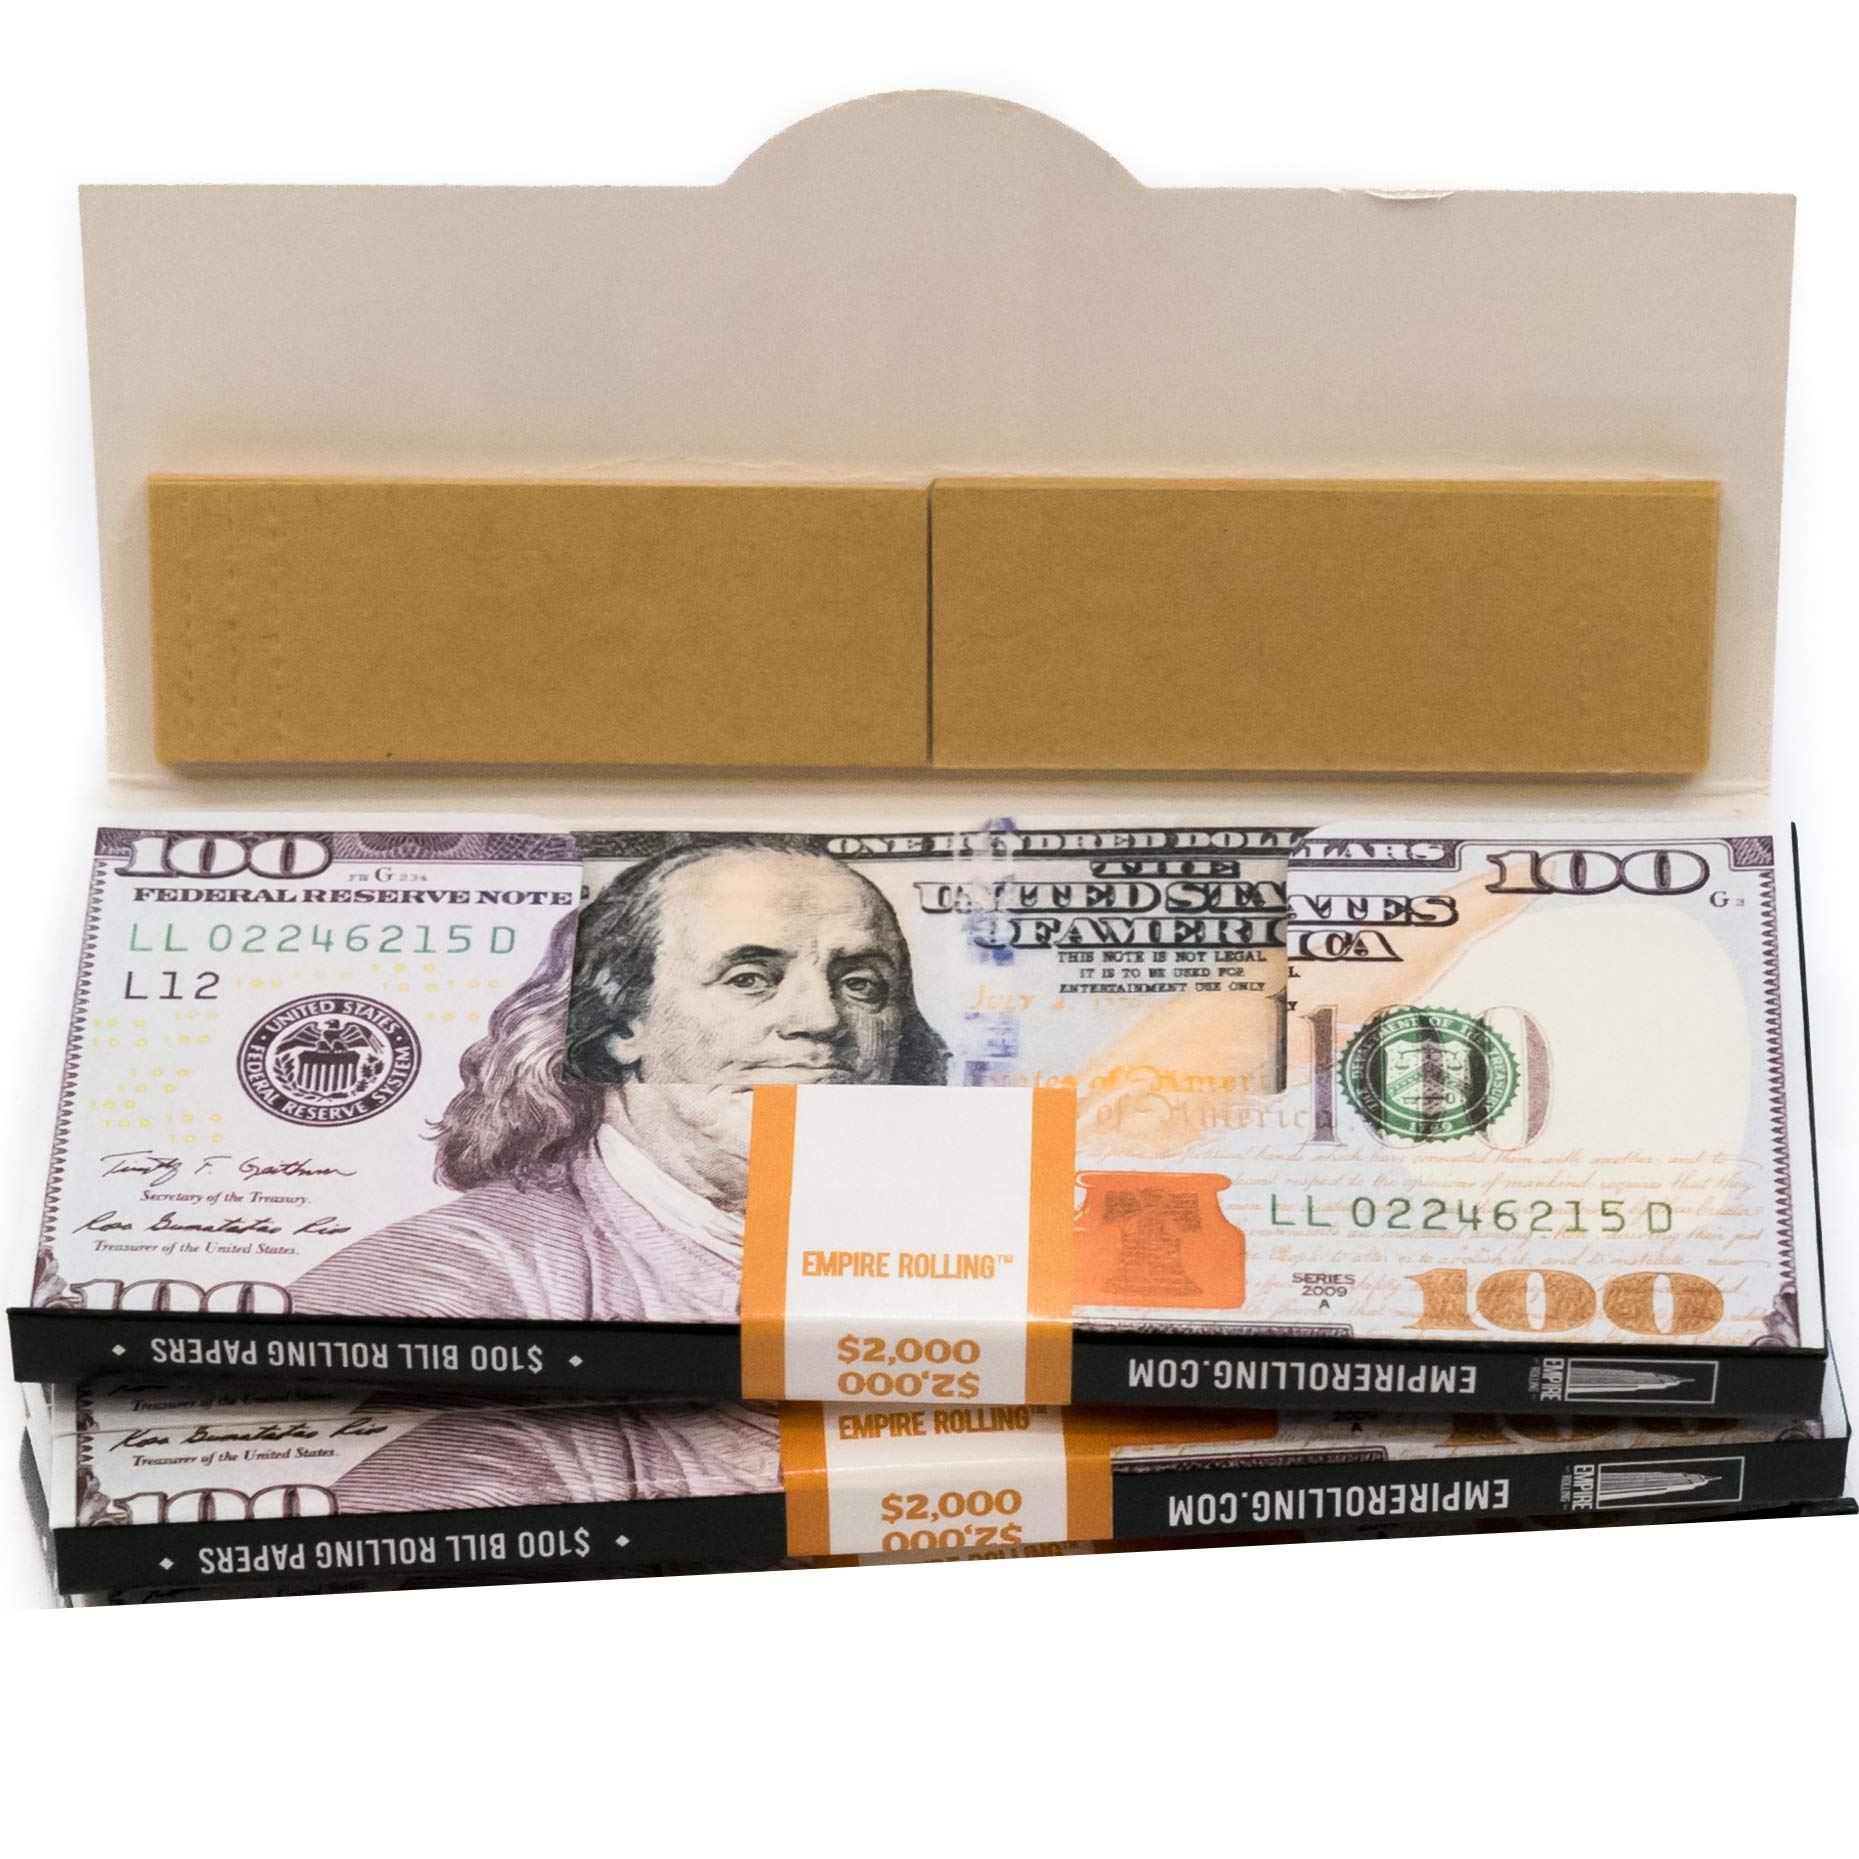 EMPIRE ROLLING - Two Pack Wallets $100 Bill Rolling Paper (40 Papers) King Size Benny | Made from Pure All Natural Ingredients | Premium Quality Paper, Organic, 100% Vegan, Non-GMO, Unbleached